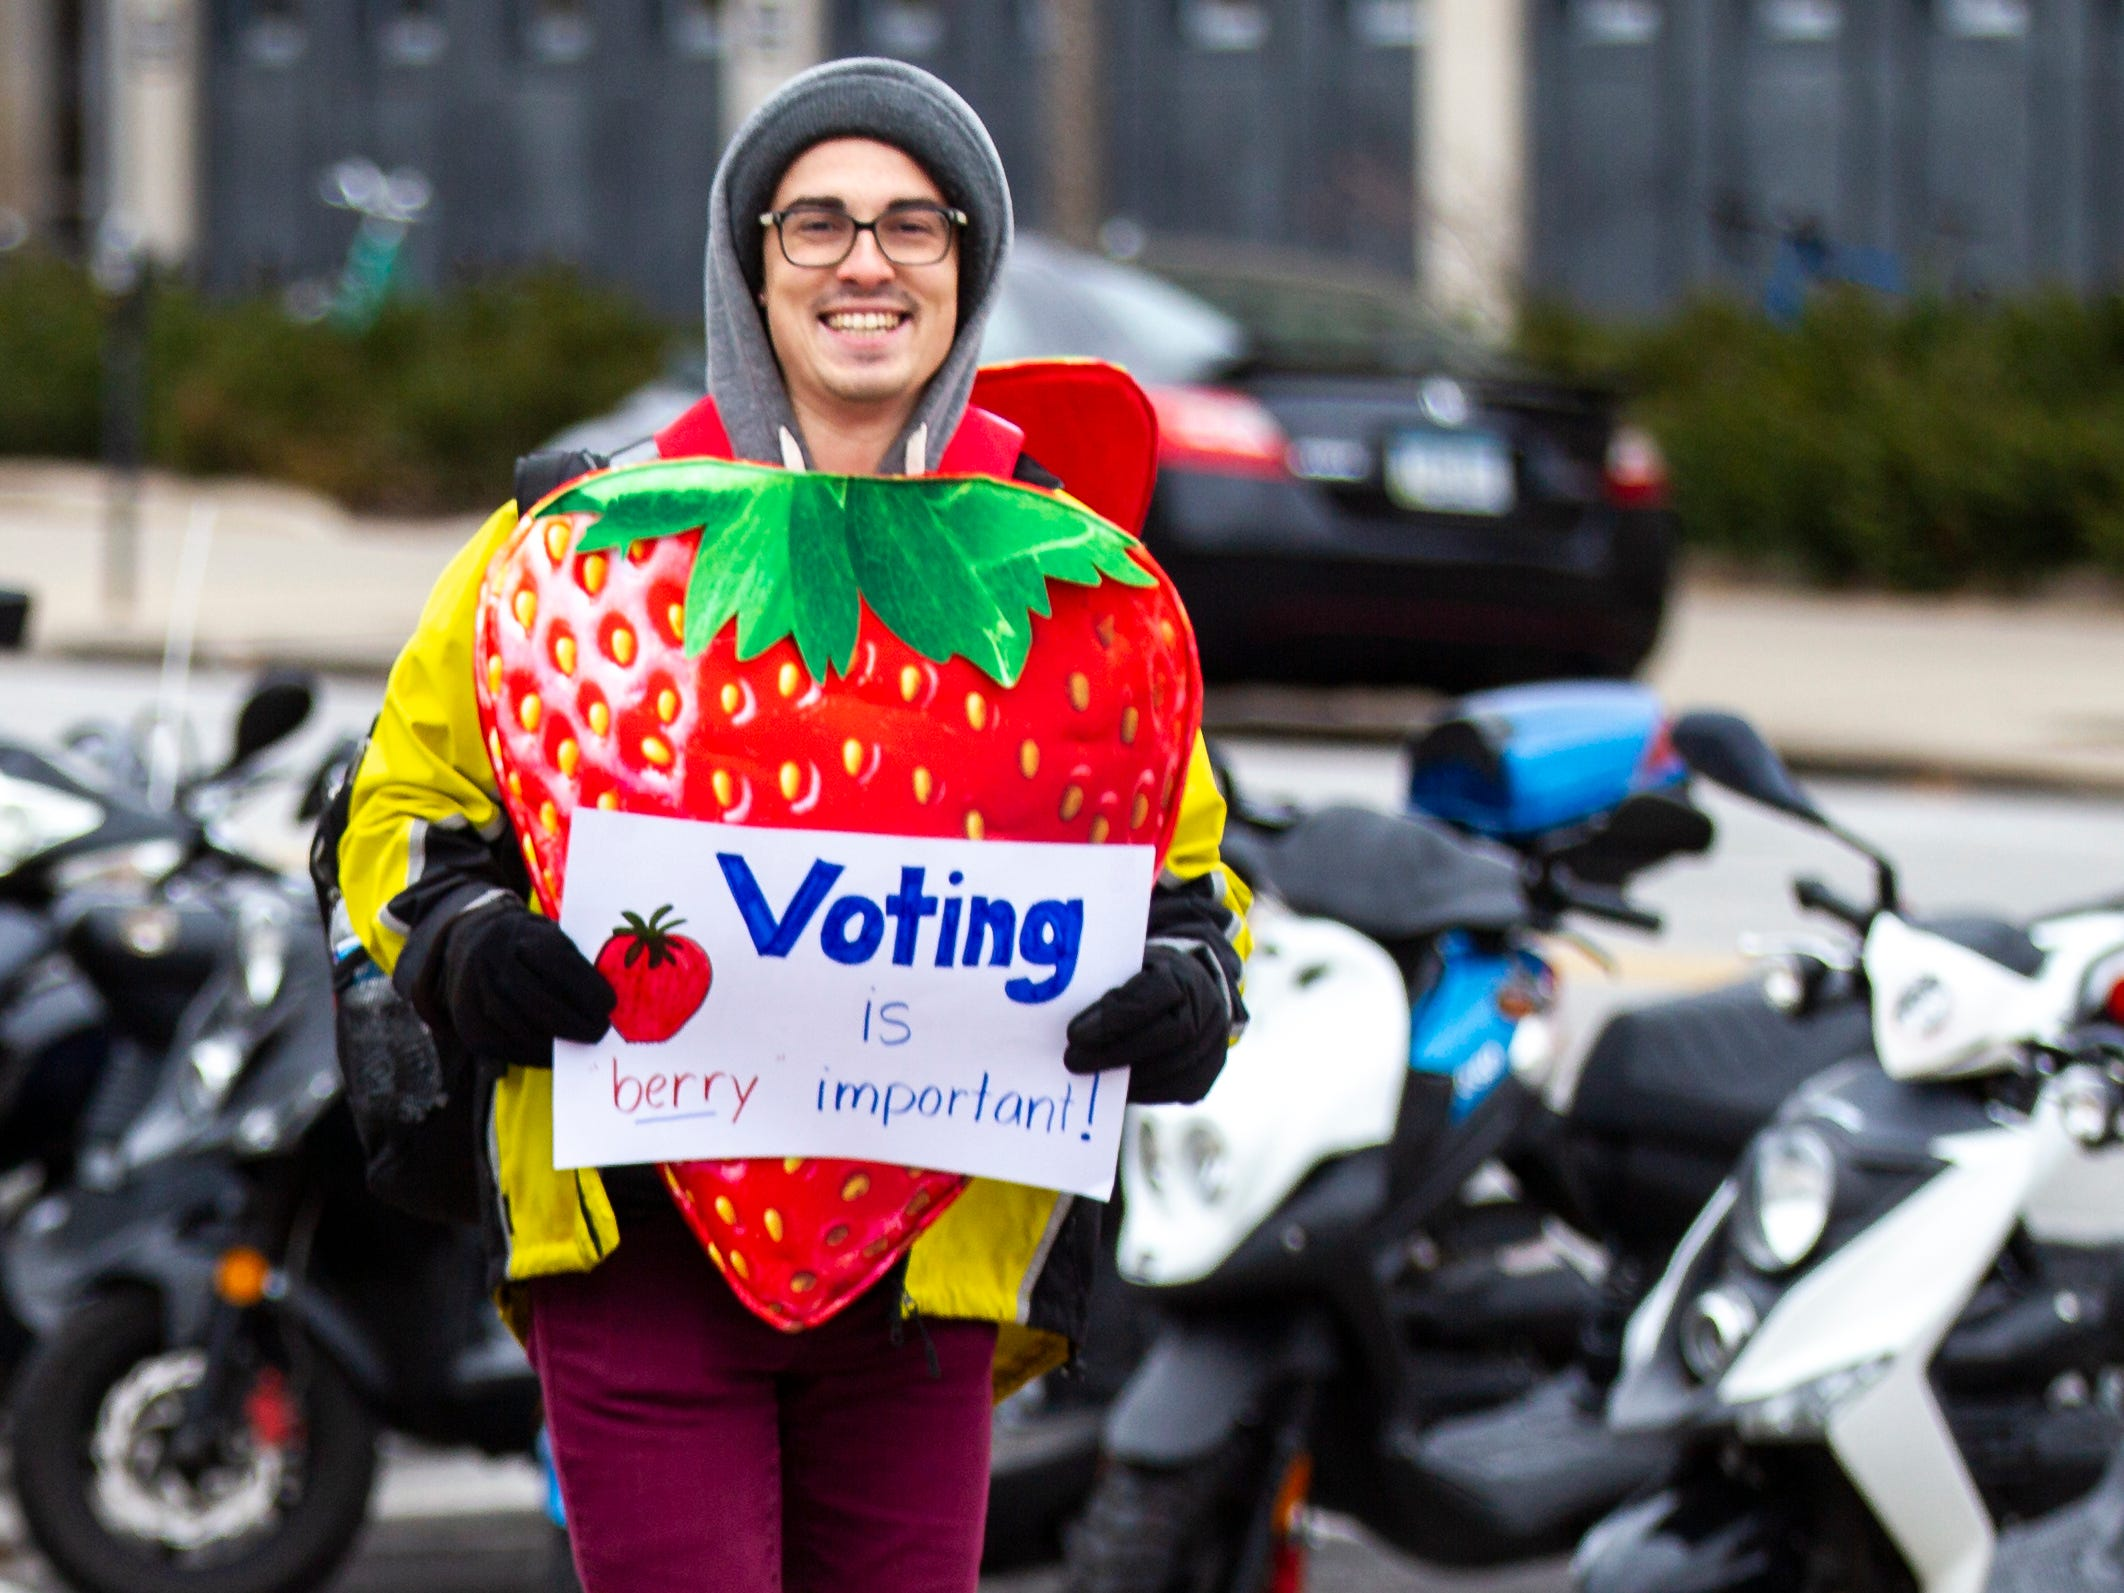 """University of Iowa student Ryan Hall carries a sign reading """"Voting is berry important!"""" while wearing a strawberry costume on Tuesday, Nov. 6, 2018, along Clinton Street Iowa City."""